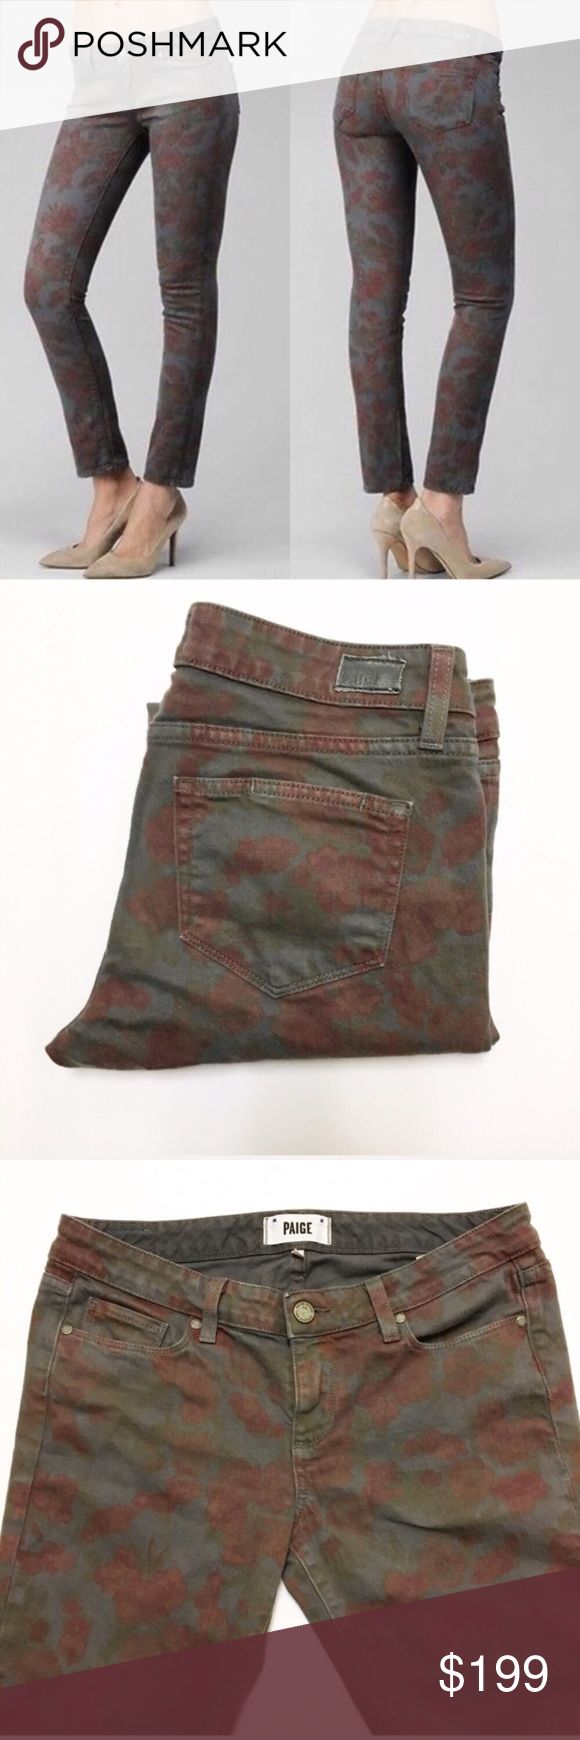 """Paige Size 29 Lola Skyline Ankle Peg Jeans Item: Paige Lola Skyline Ankle Peg Jeans   - Size: 29 - Material: - Condition: GUC - Color: Gray with Red Floral - Style: Skyline Ankle Peg  *Measurements:  Waist: 16.5""""  Leg Opening: 6"""" Rise: 8.25"""" Inseam: 29"""" Paige Jeans Jeans Ankle & Cropped"""